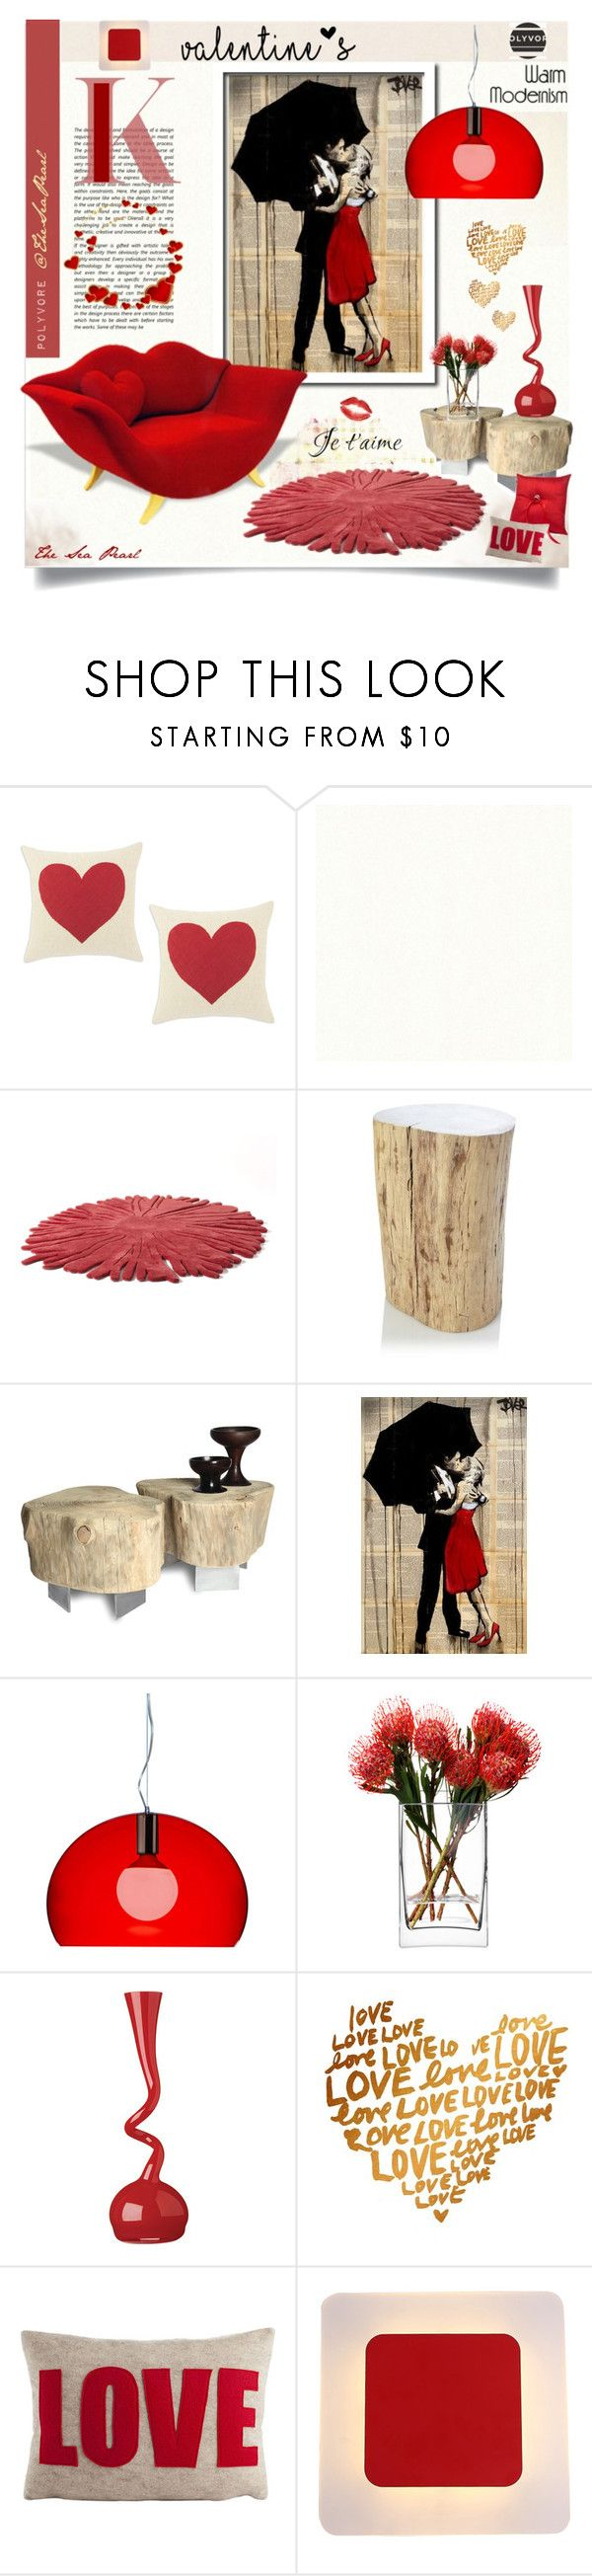 """""""Pls. READ👇 :Valentine Love Story♡"""" by theseapearl ❤ liked on Polyvore featuring interior, interiors, interior design, home, home decor, interior decorating, Nodus, French Connection, Kartell and LSA International"""